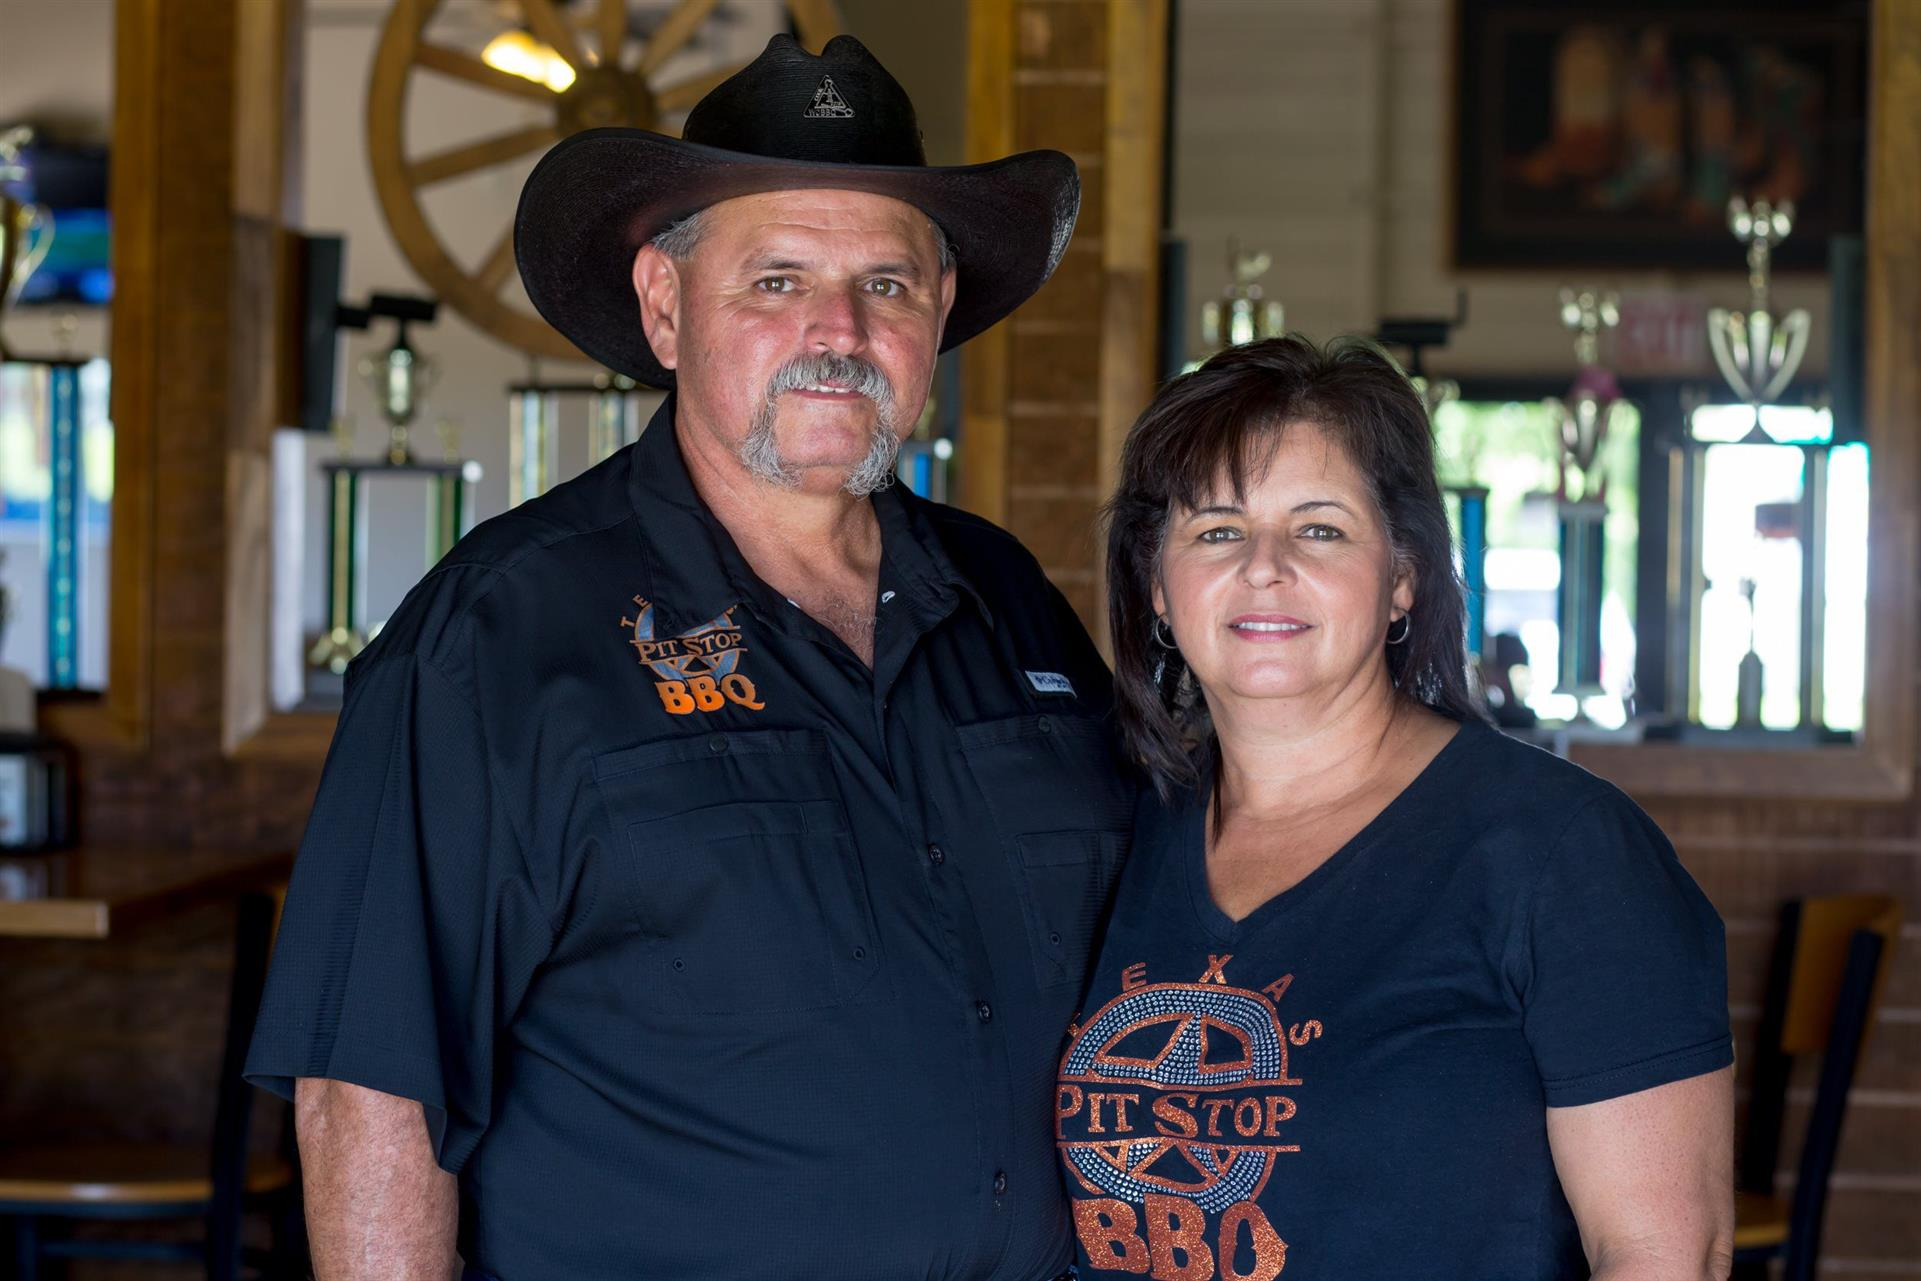 Owners Arnold Garza & Valerie Johnson